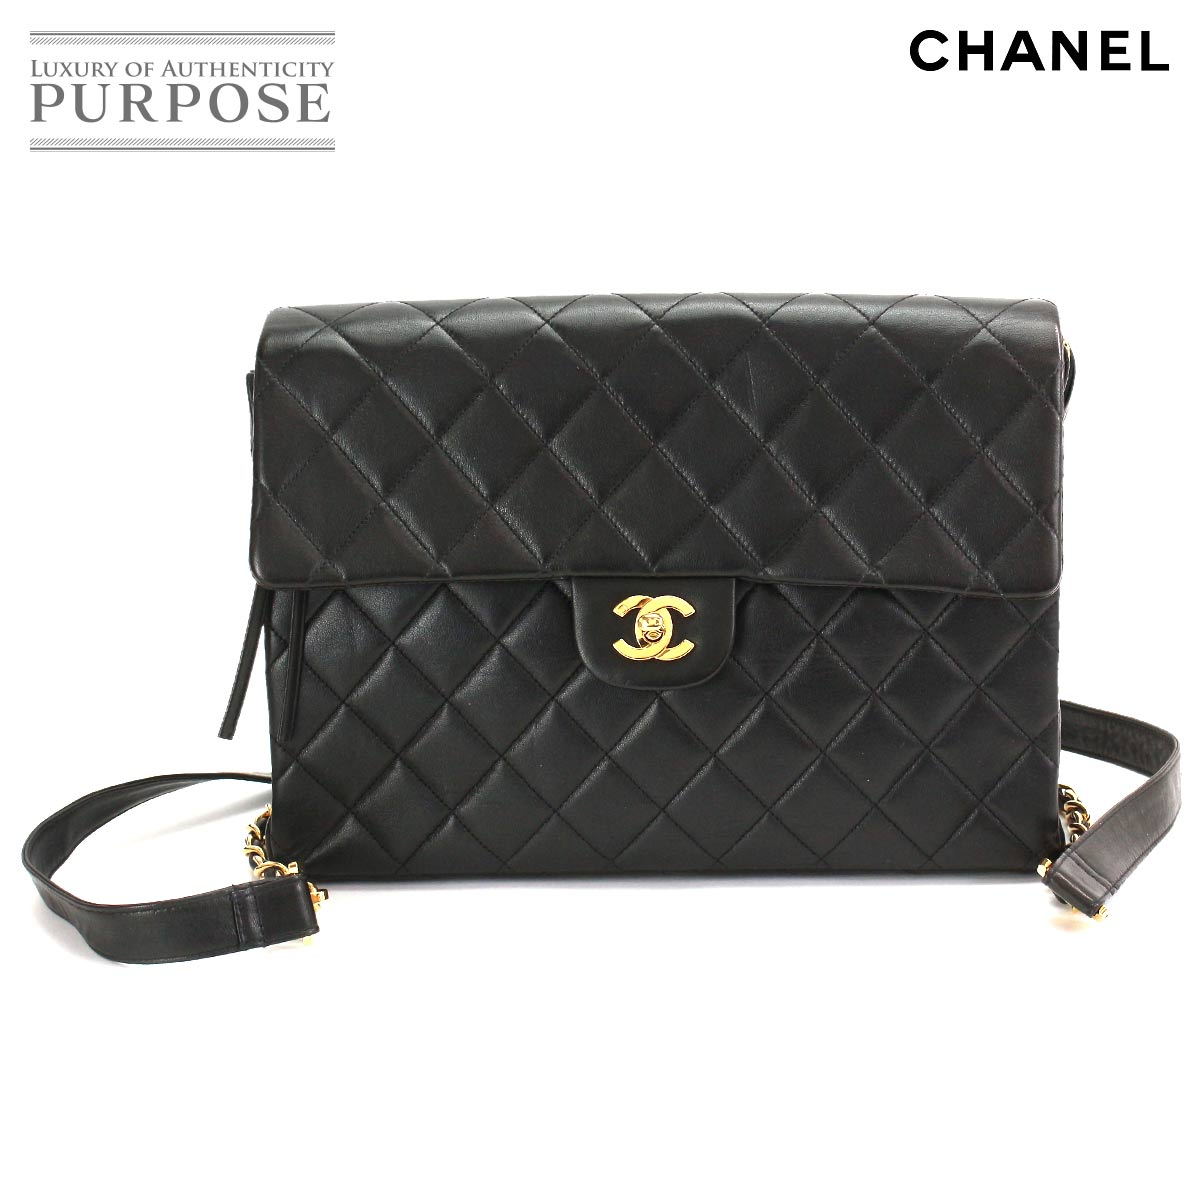 e67945b790ce Chanel CHANEL matelasse chain rucksack backpack leather black gold metal  fittings [used] brand